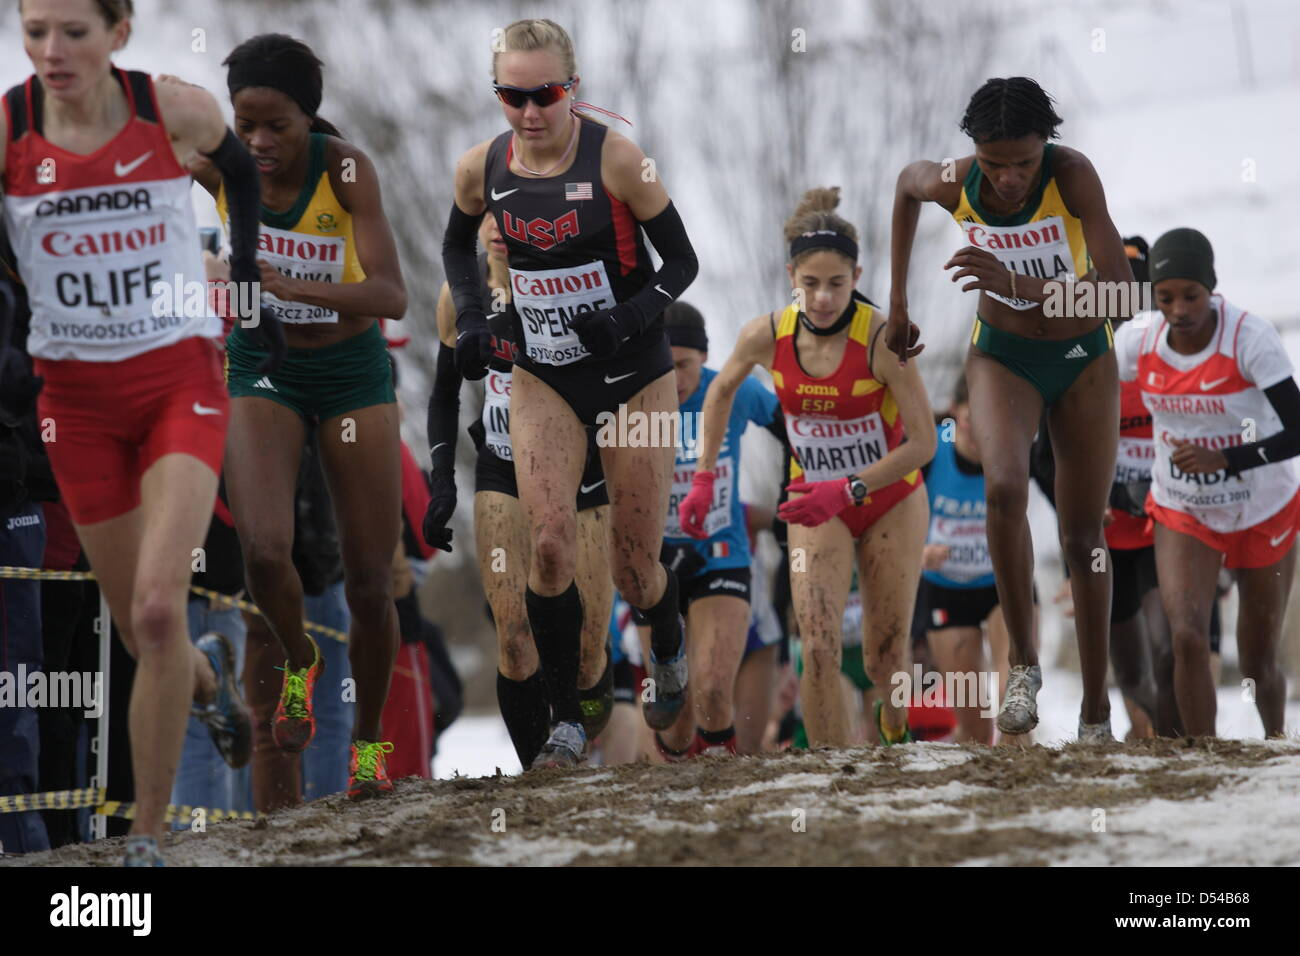 Bydgoszcz, Poland 24th, March 2013 IAAF World Cross Country Chamiponships. Senior Race Woman.  Pictured: Neely Spence - Stock Image